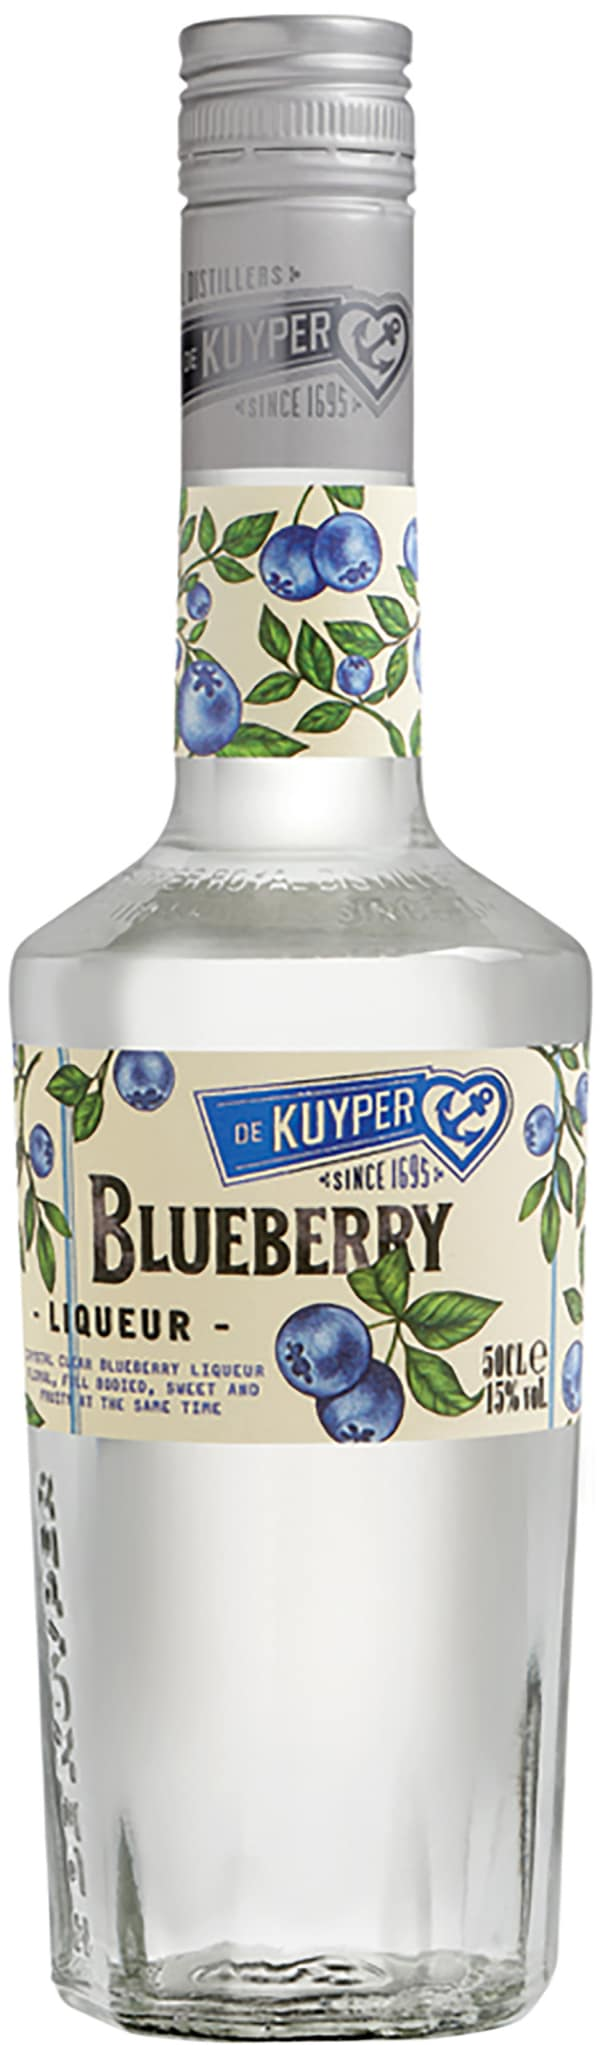 De Kuyper Blueberry